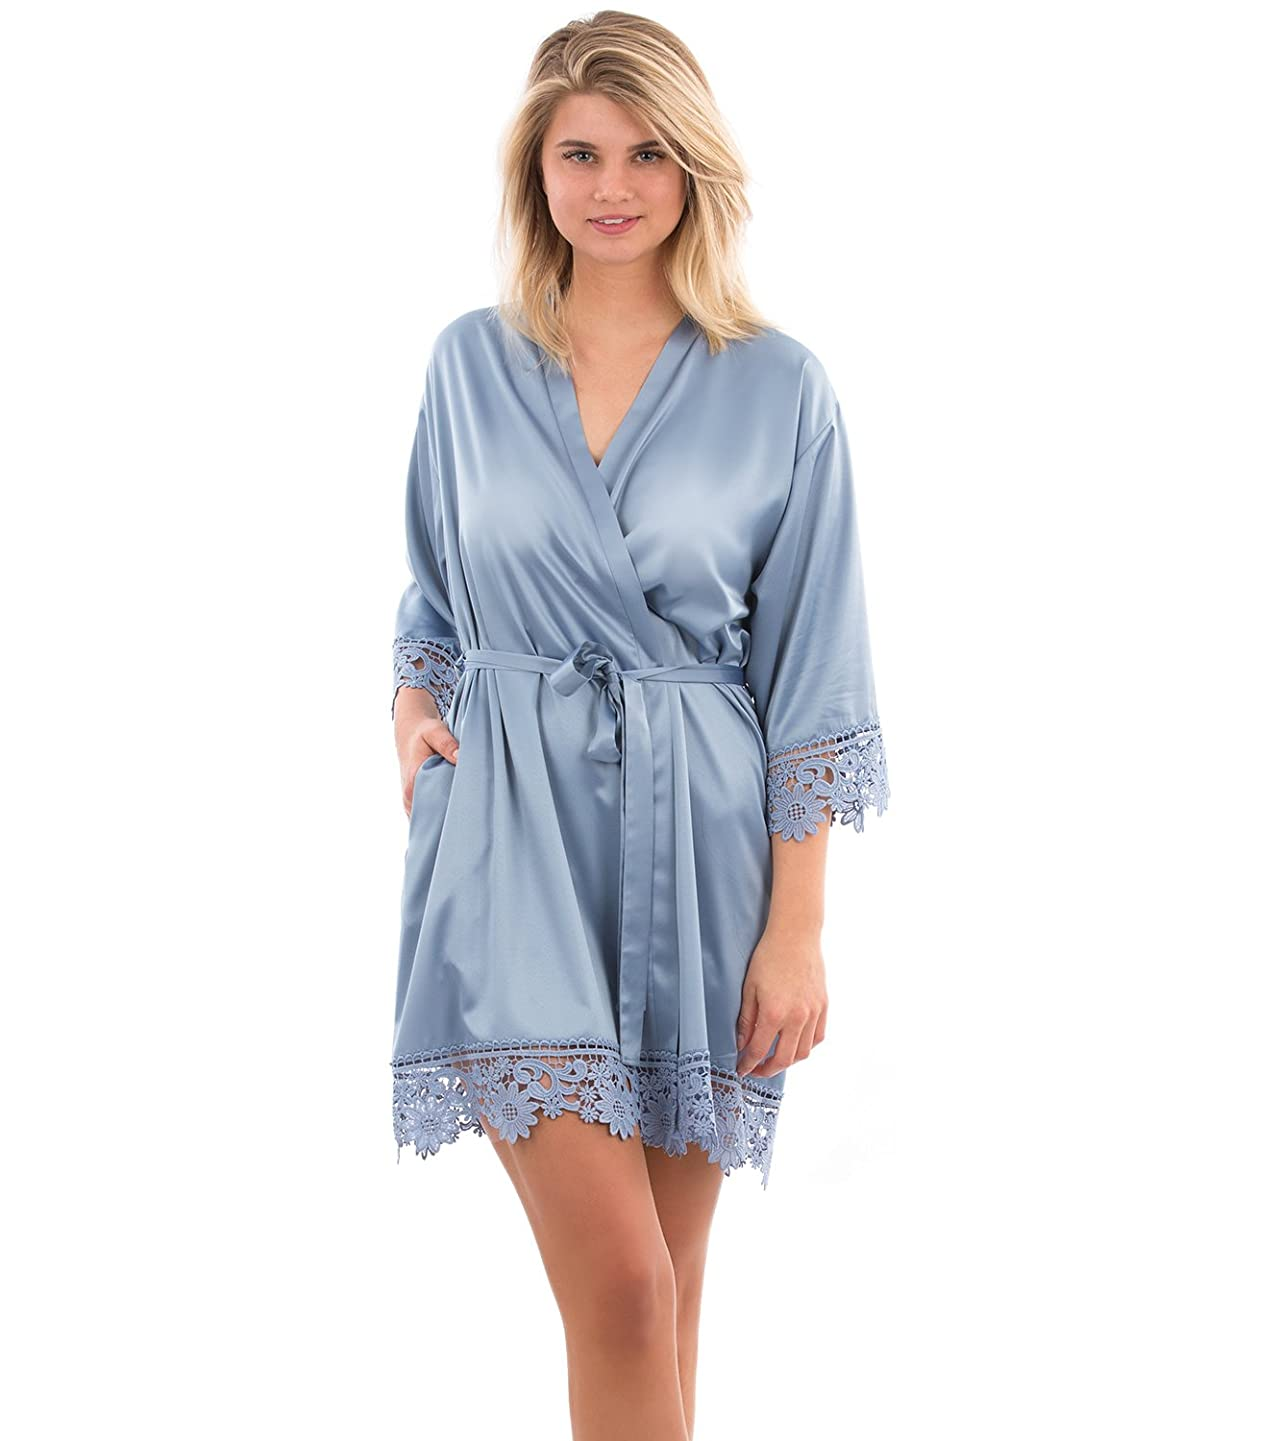 VEAMI Annabelle Lace Satin Robe, Short Robe for Women